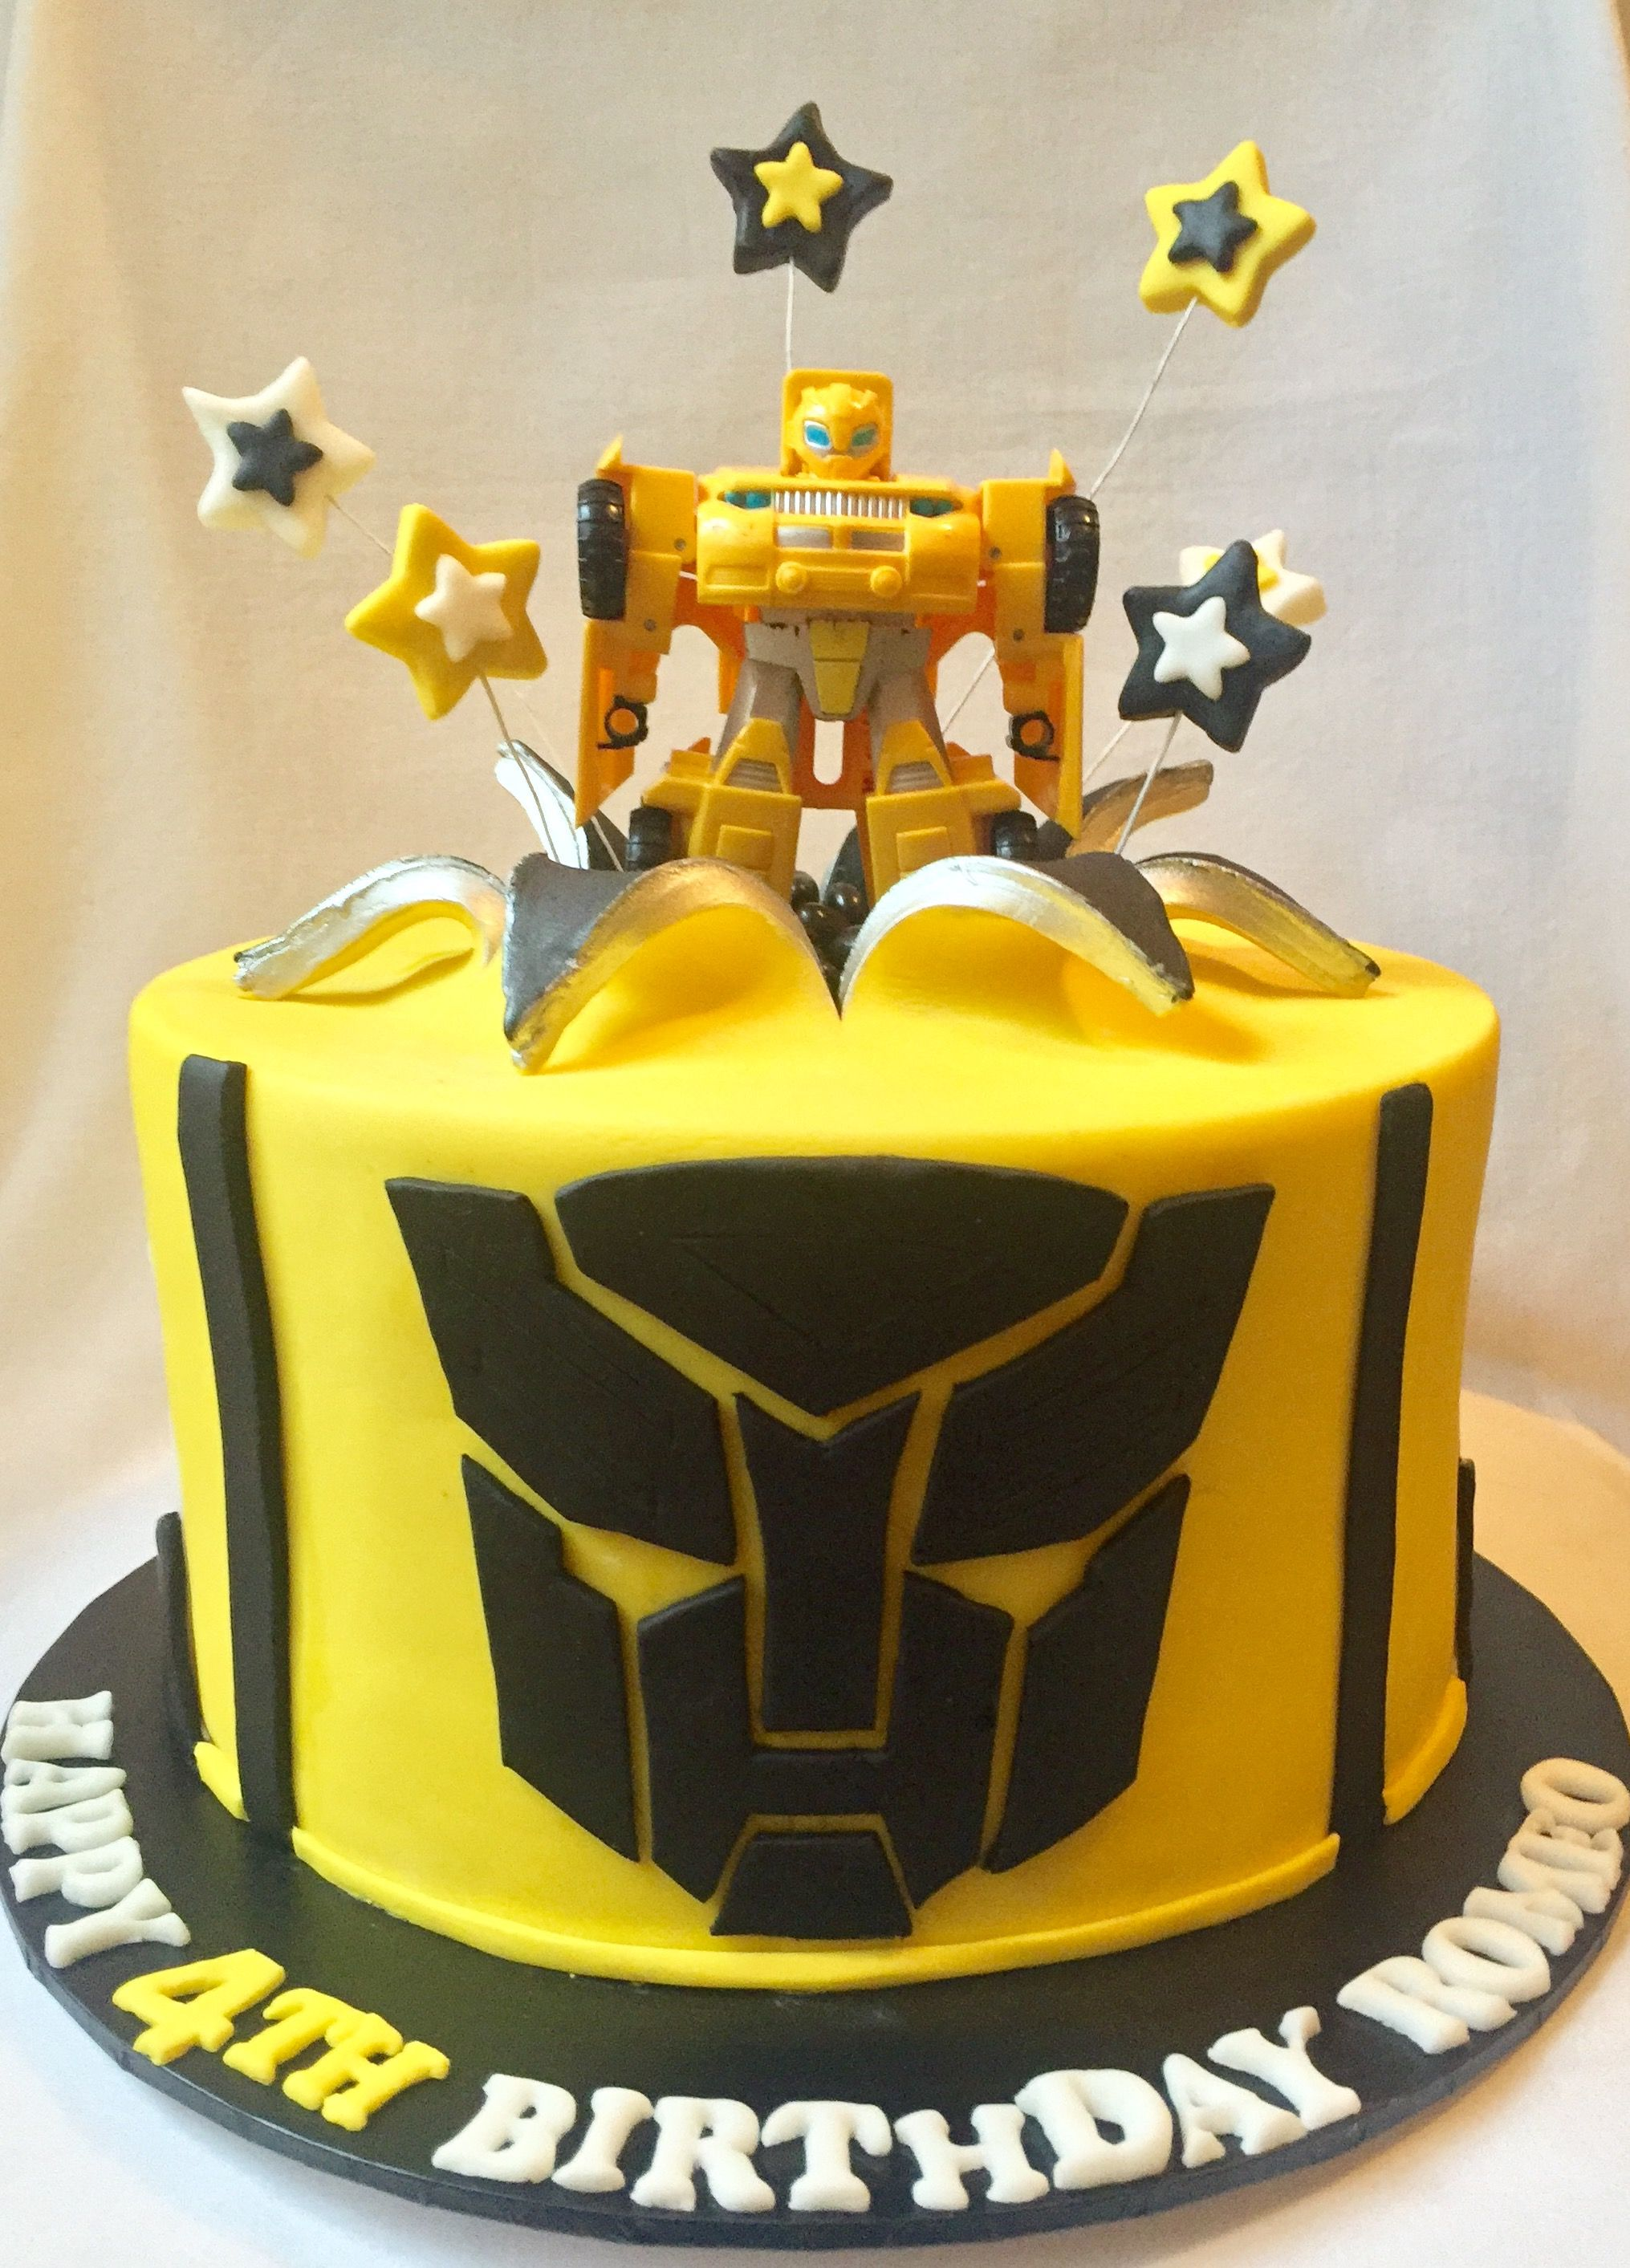 Pleasant Bumble Bee Transformer Cake By Cupcakes For Your Cupcake Sydney Funny Birthday Cards Online Elaedamsfinfo